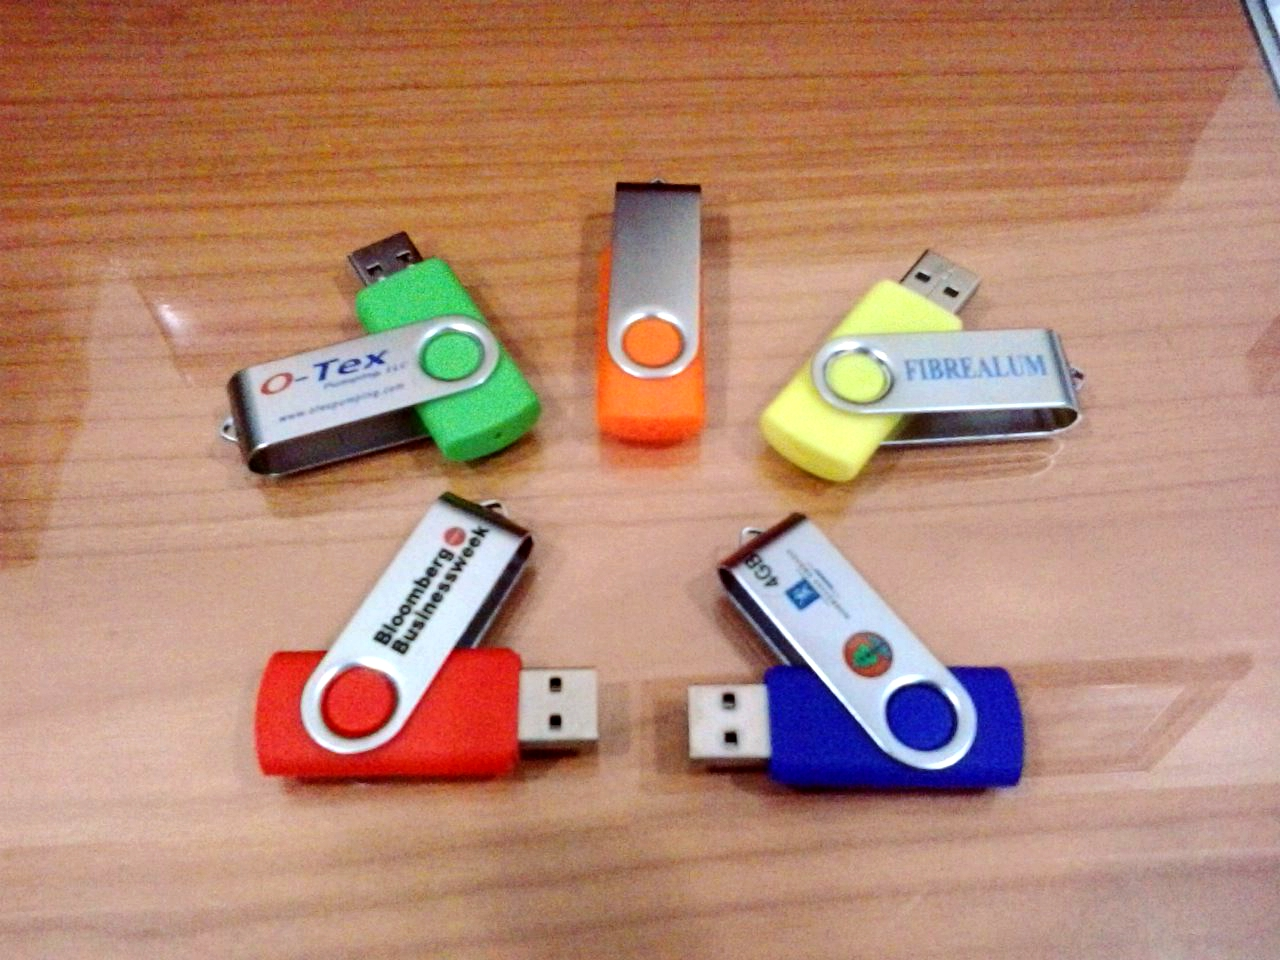 https://res.cloudinary.com/daydapk4h/image/upload/v1516353465/jual-flashdisk-kartu-promosi_newr7o.jpg